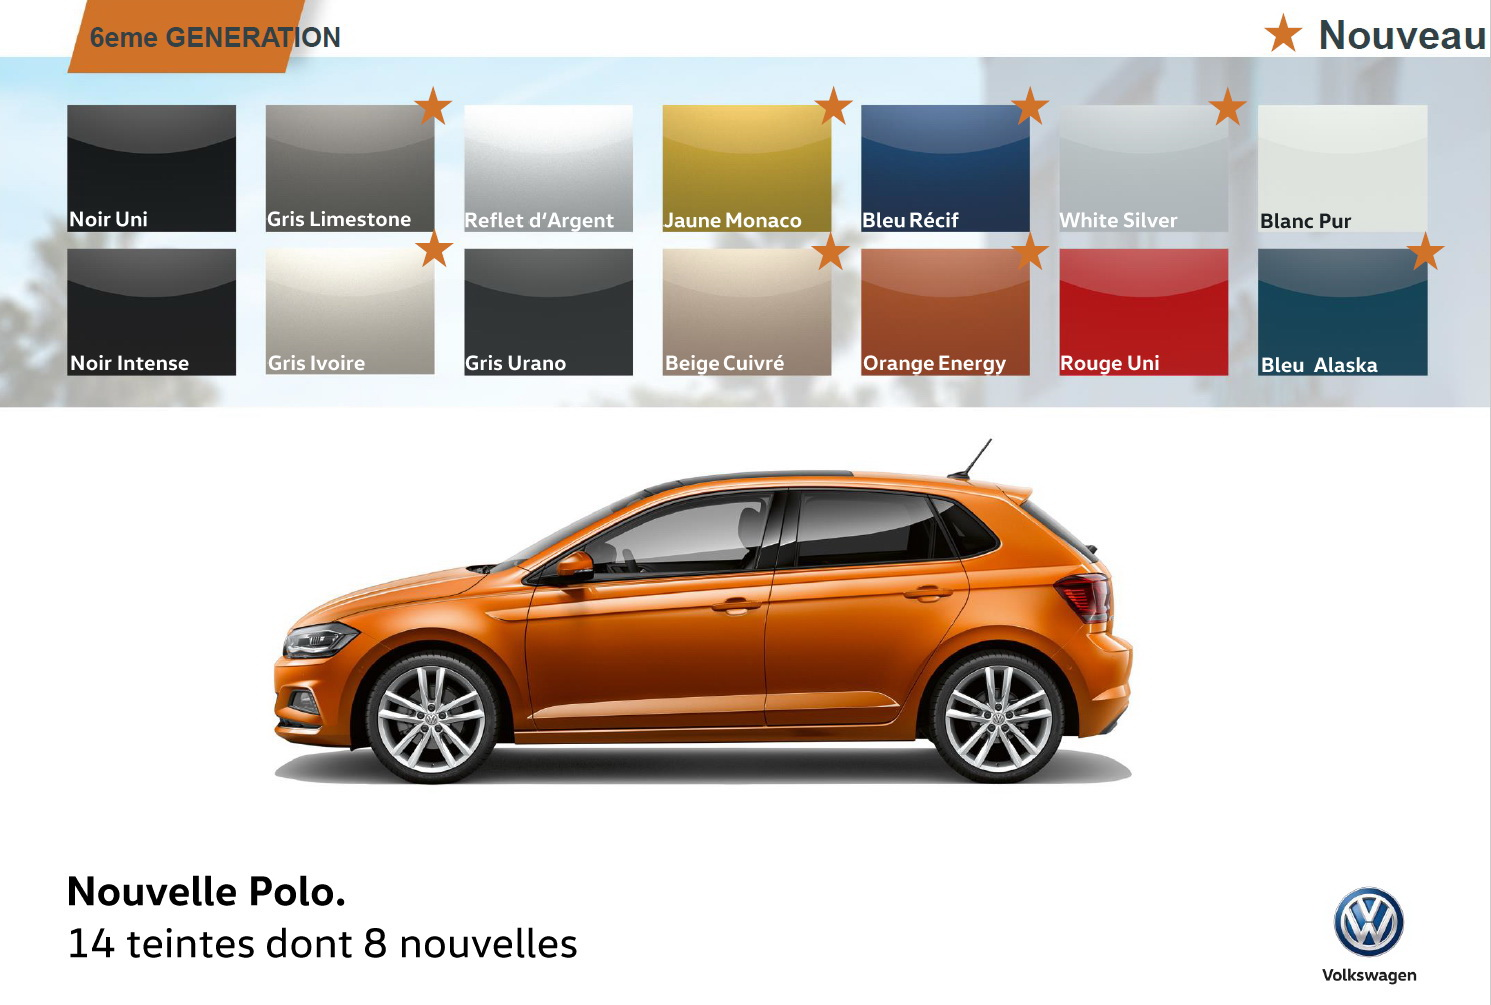 tarifs volkswagen polo 6 2017 prix gamme et fiches techniques photo 17 l 39 argus. Black Bedroom Furniture Sets. Home Design Ideas